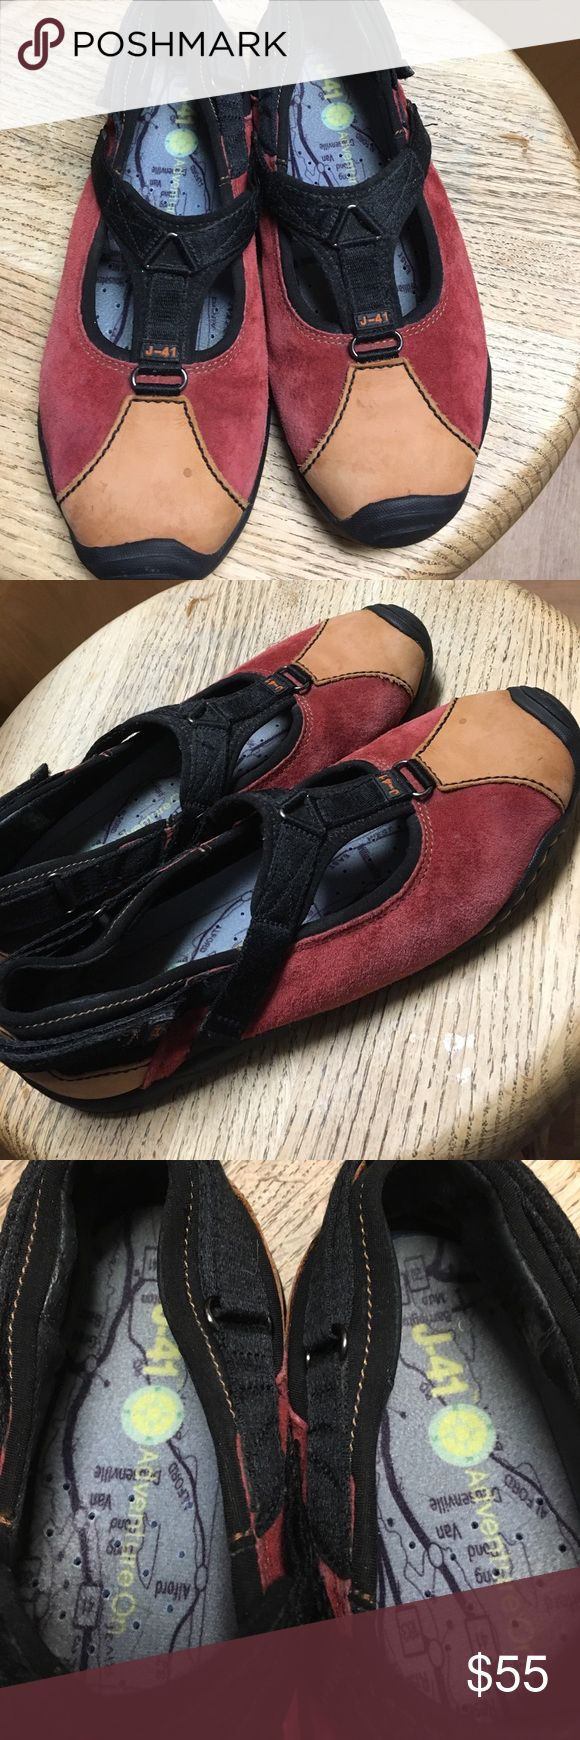 Shoes  J41  Jeep engineered traction sole size 8:5 J-41 Jeep engineered traction sole casual shoes excellent condition size 8:5 J-41 Shoes Flats & Loafers